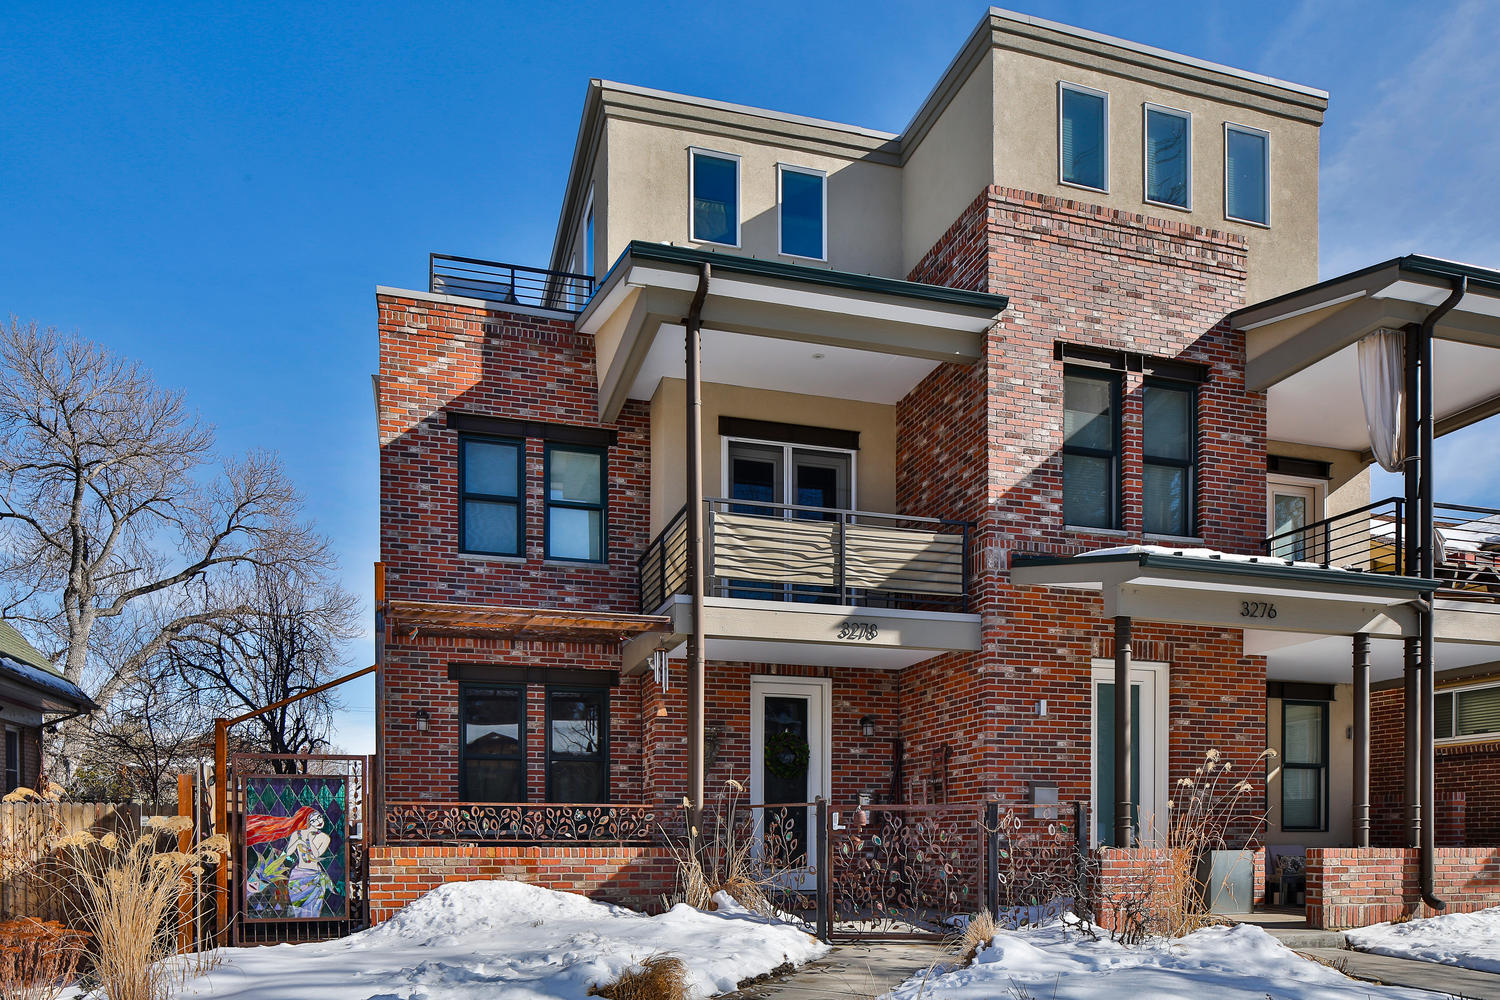 Single Family Home for Sale at Beautifully appointed Highlands townhome! 3278 Raleigh Street Denver, Colorado, 80212 United States